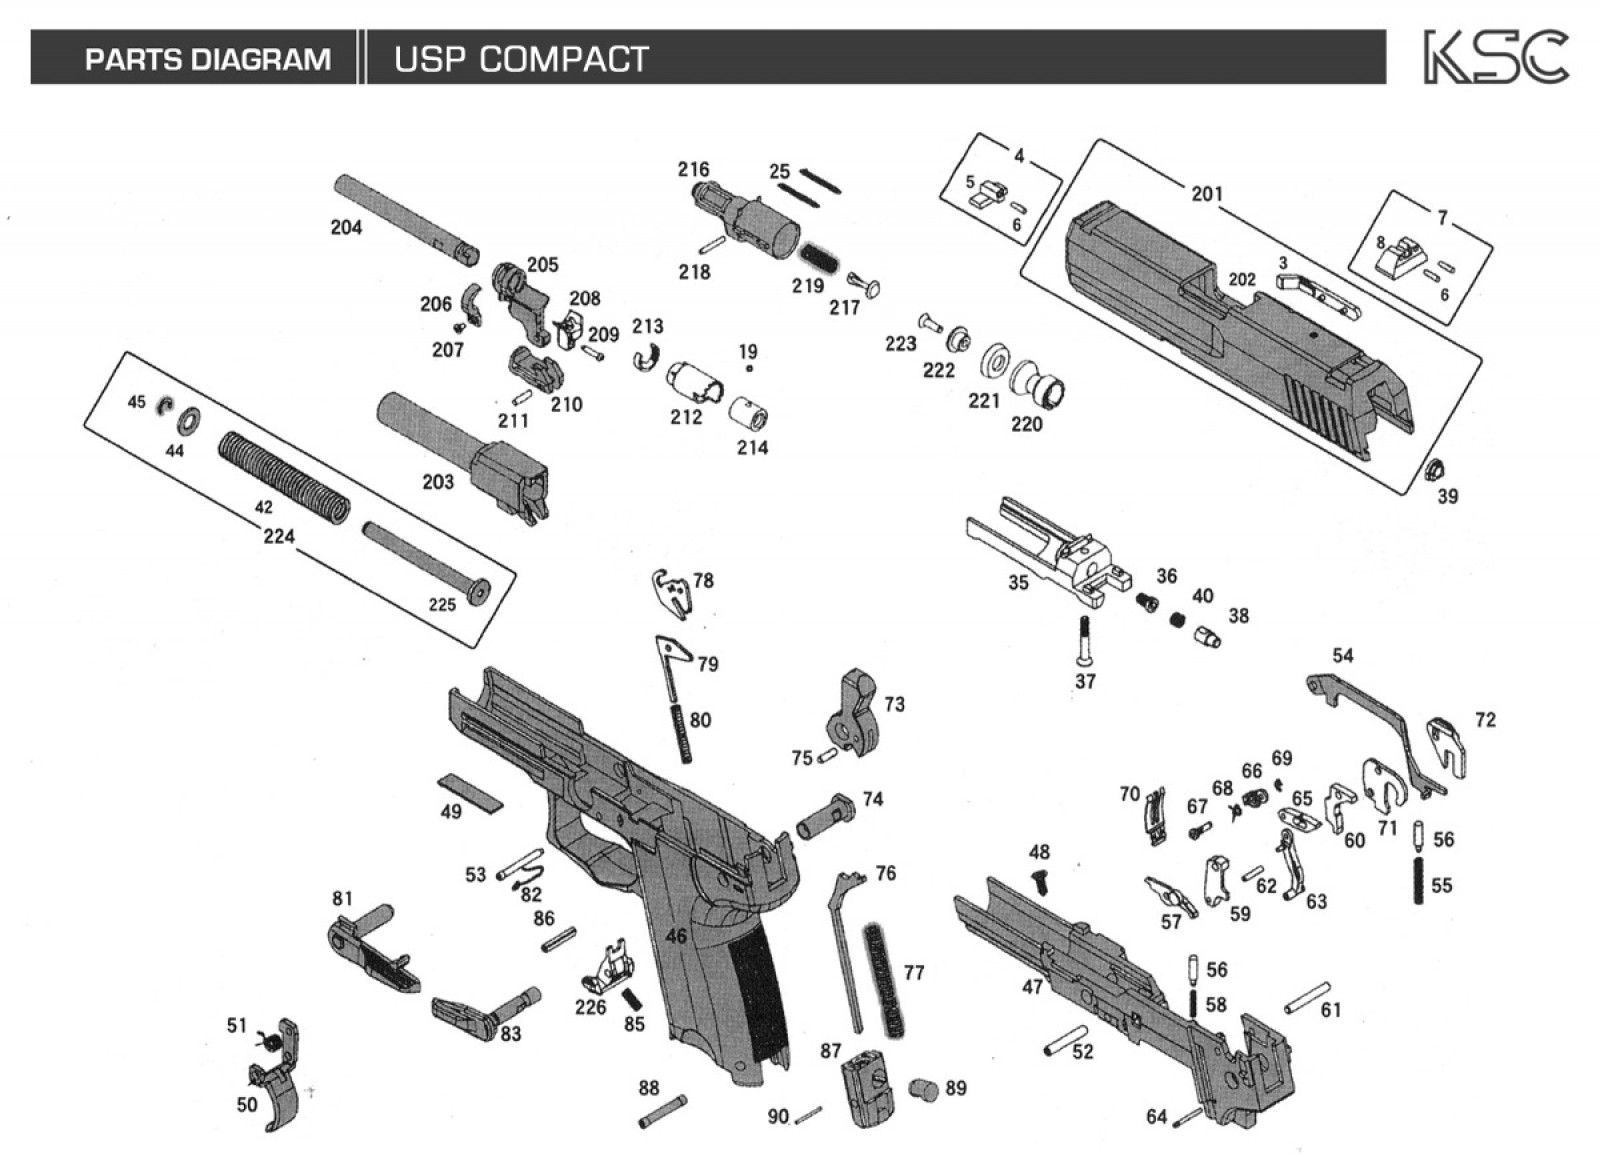 Glock 23 Disassembly Diagram Rj45 To Rj11 Wiring Diy My Airsoft Gun And Other Things